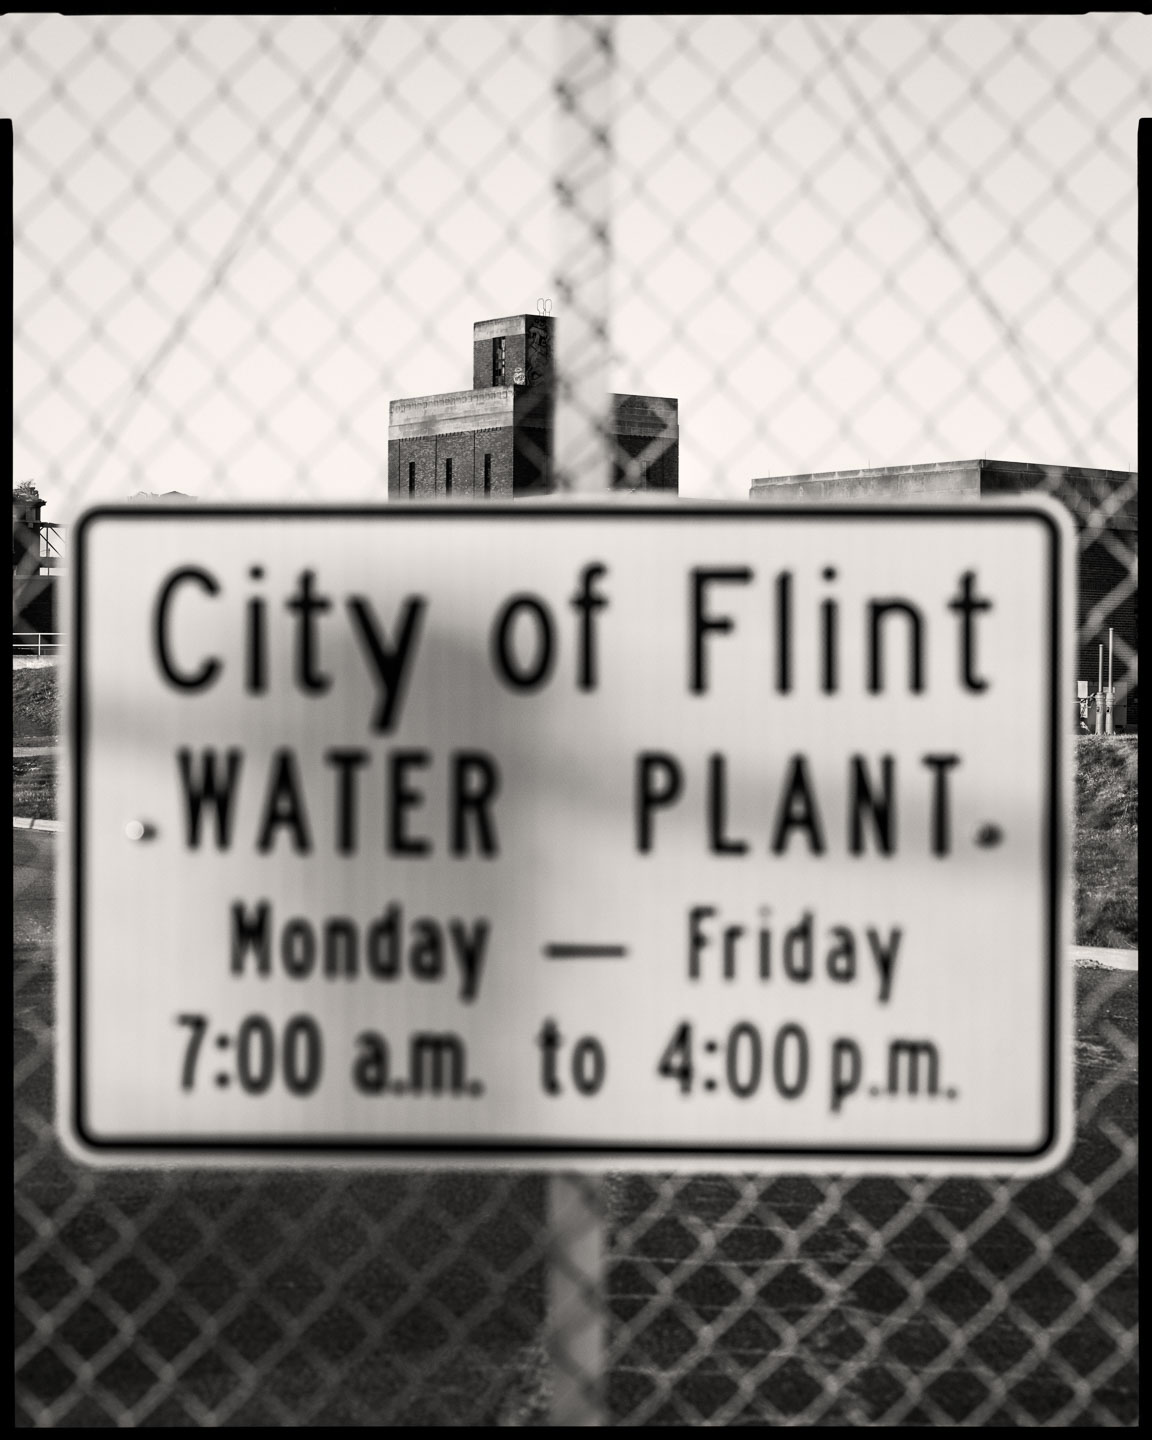 winters_wired_flint_water_7670